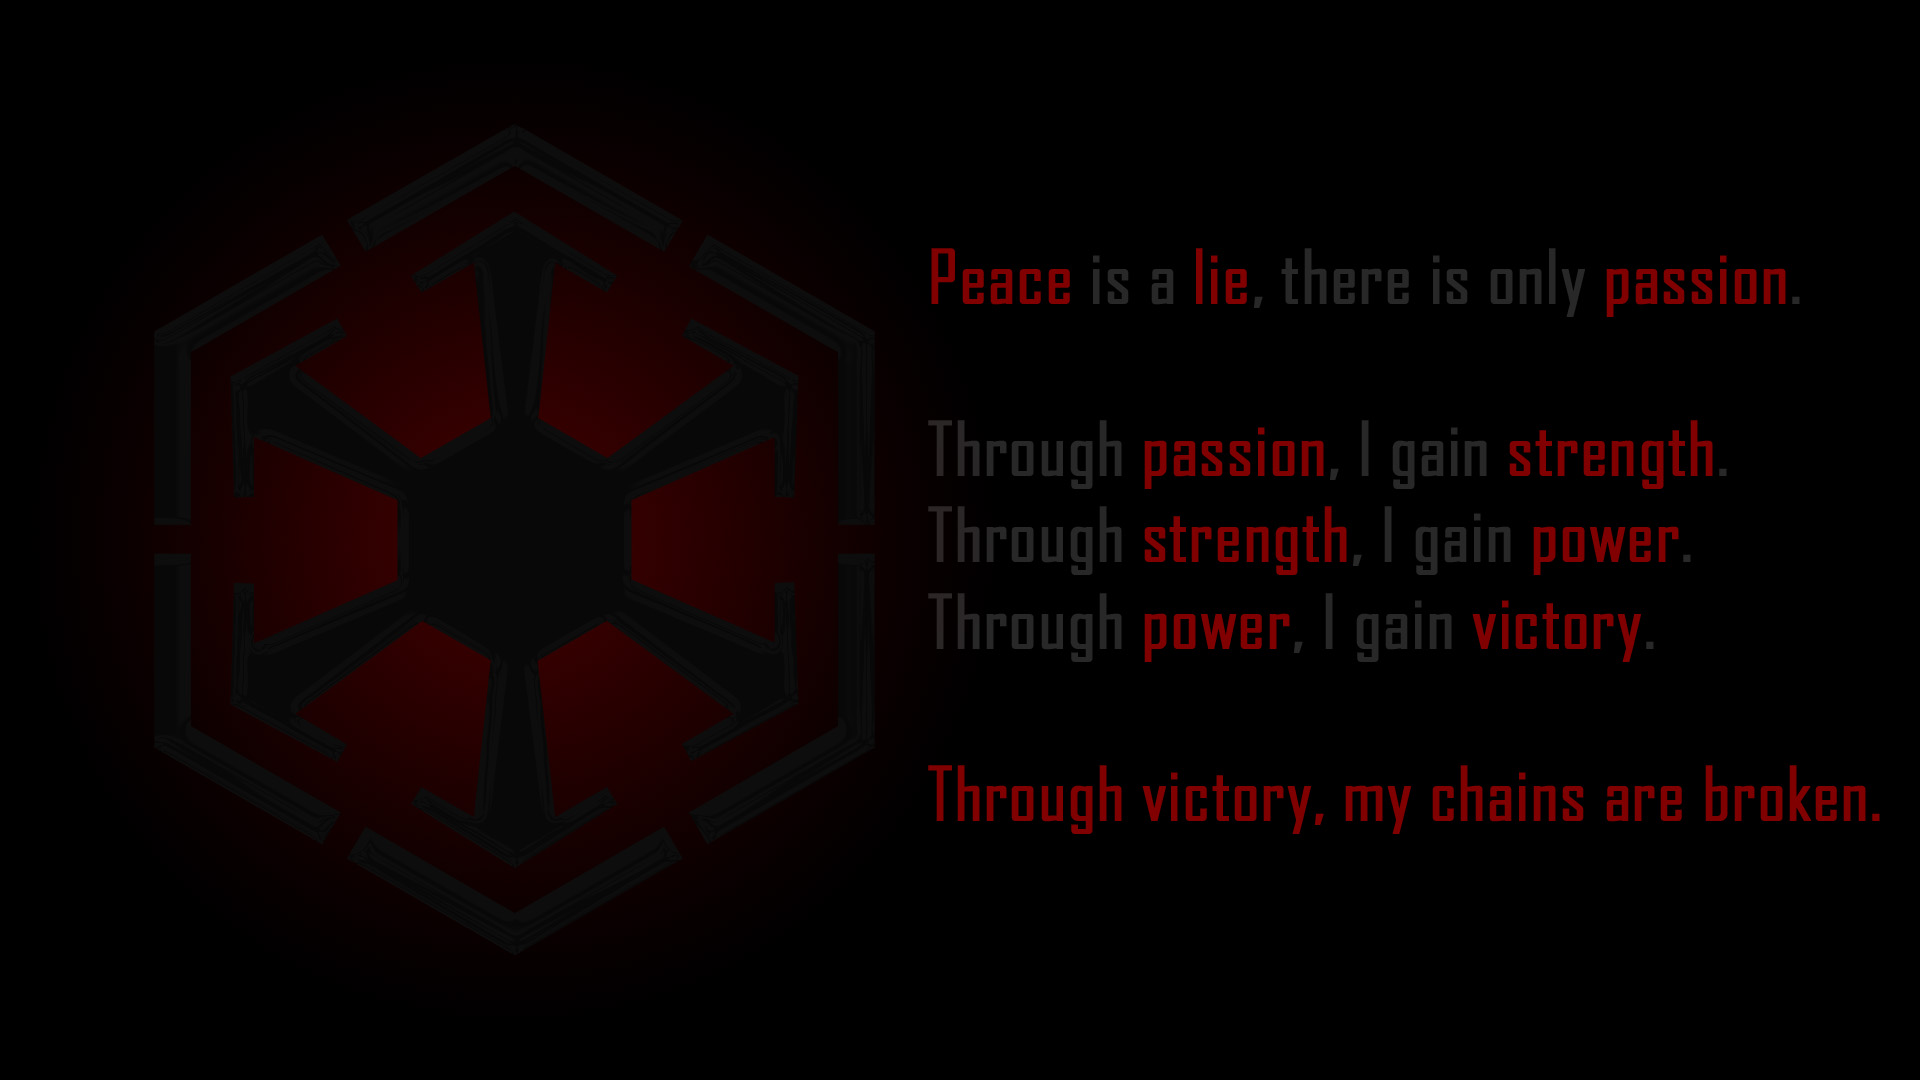 Star Wars Sith Code Wallpaper 3 298?300 | The Art Mad